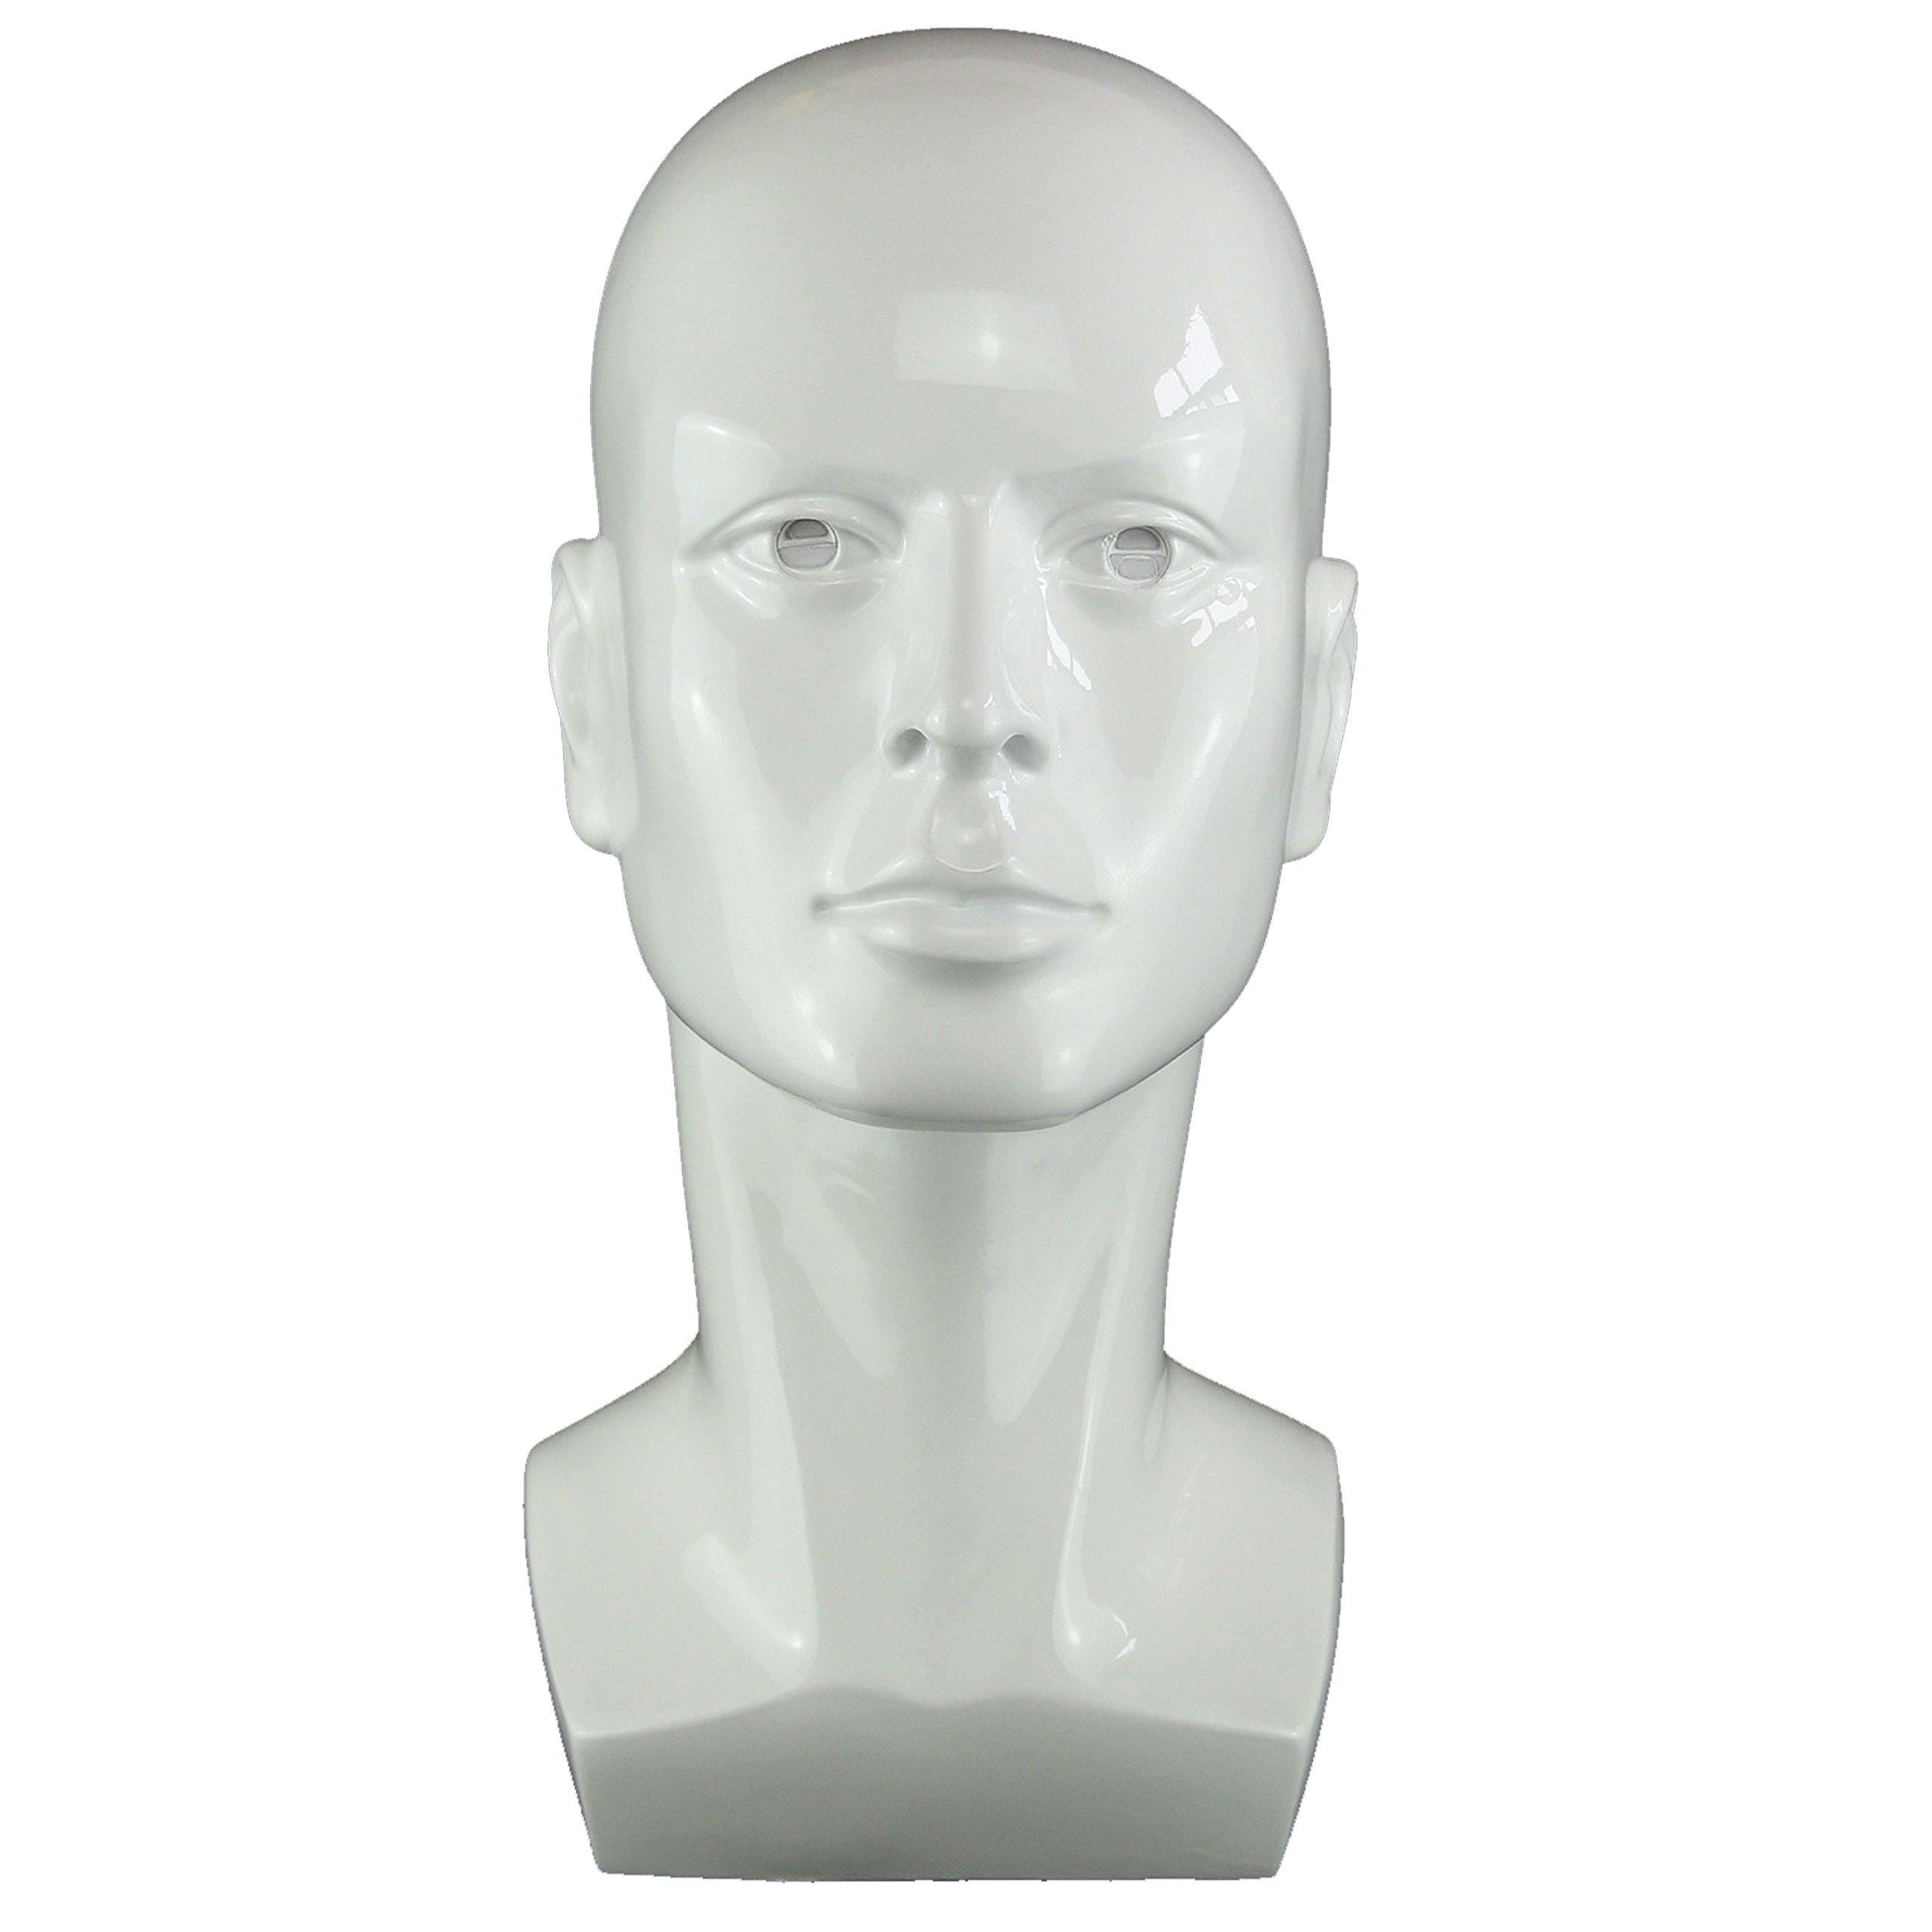 """50013 15/"""" Tall Male Mannequin Head Durable Plastic Grey"""